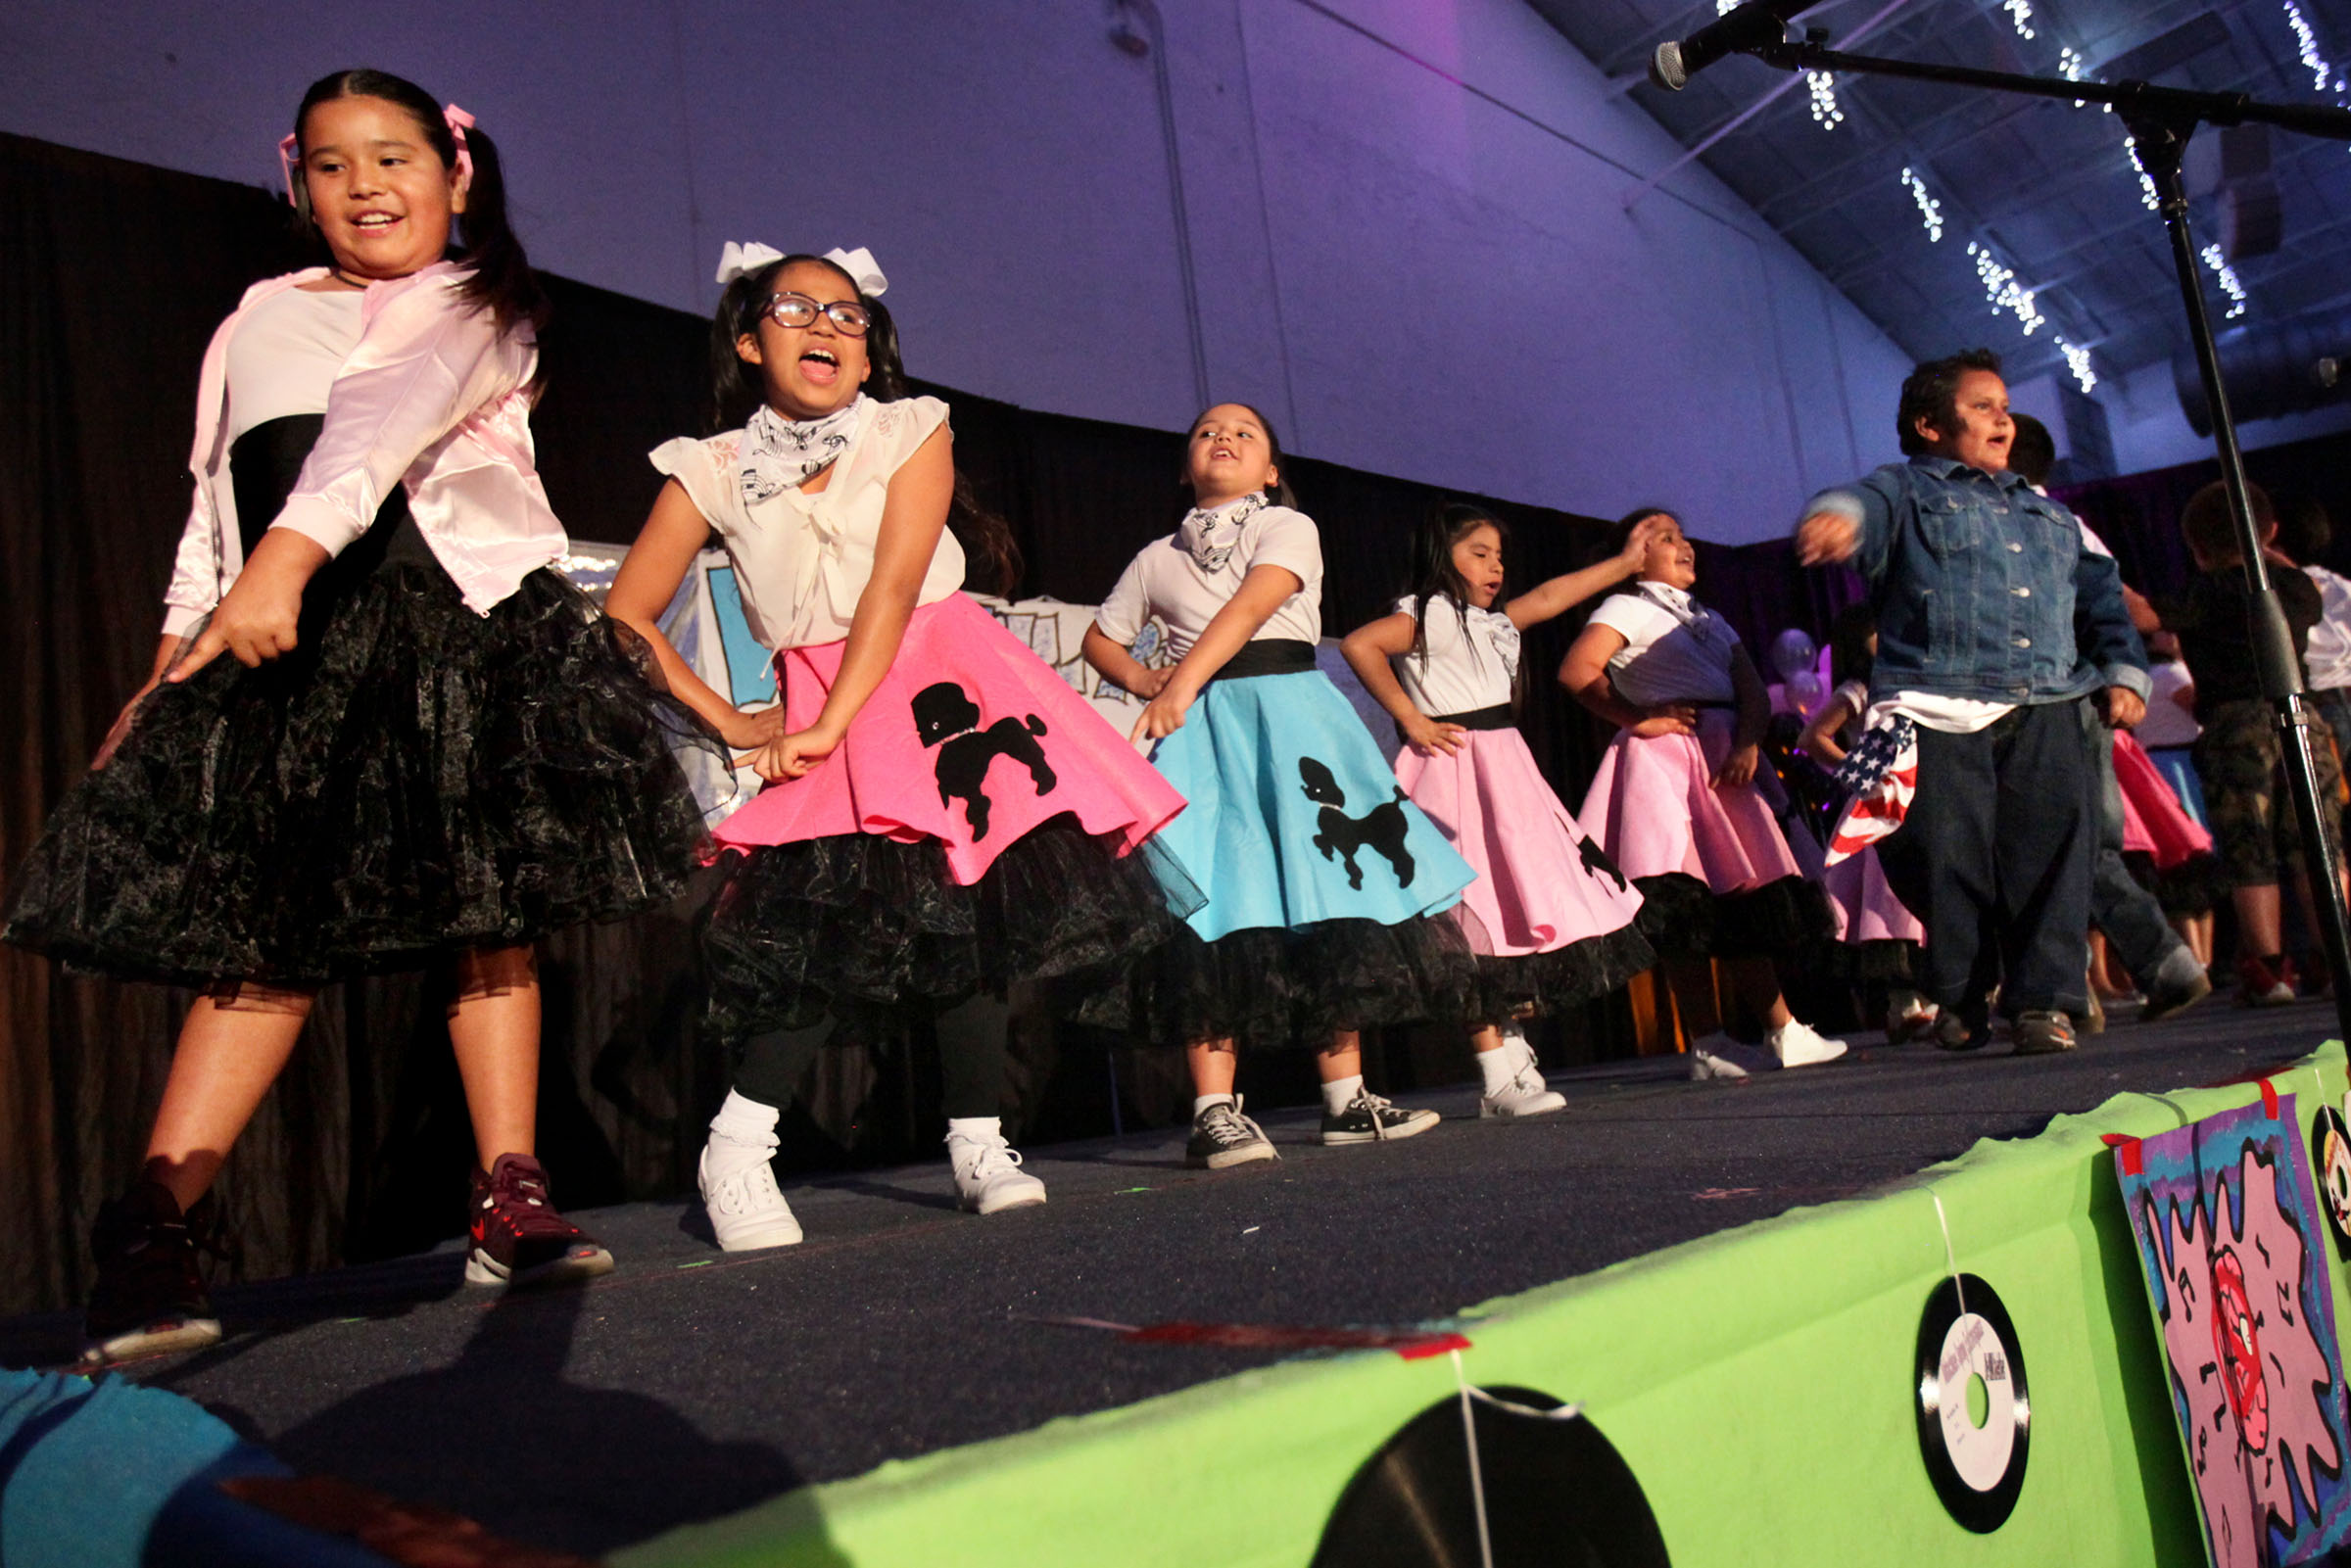 """Poodle skirts and grease slicked hair made authentic 1960s costumes for a super-charged rendition of Elvis Presley's hit song """"Hound Dog"""" by Ahfachkee School second grade students."""